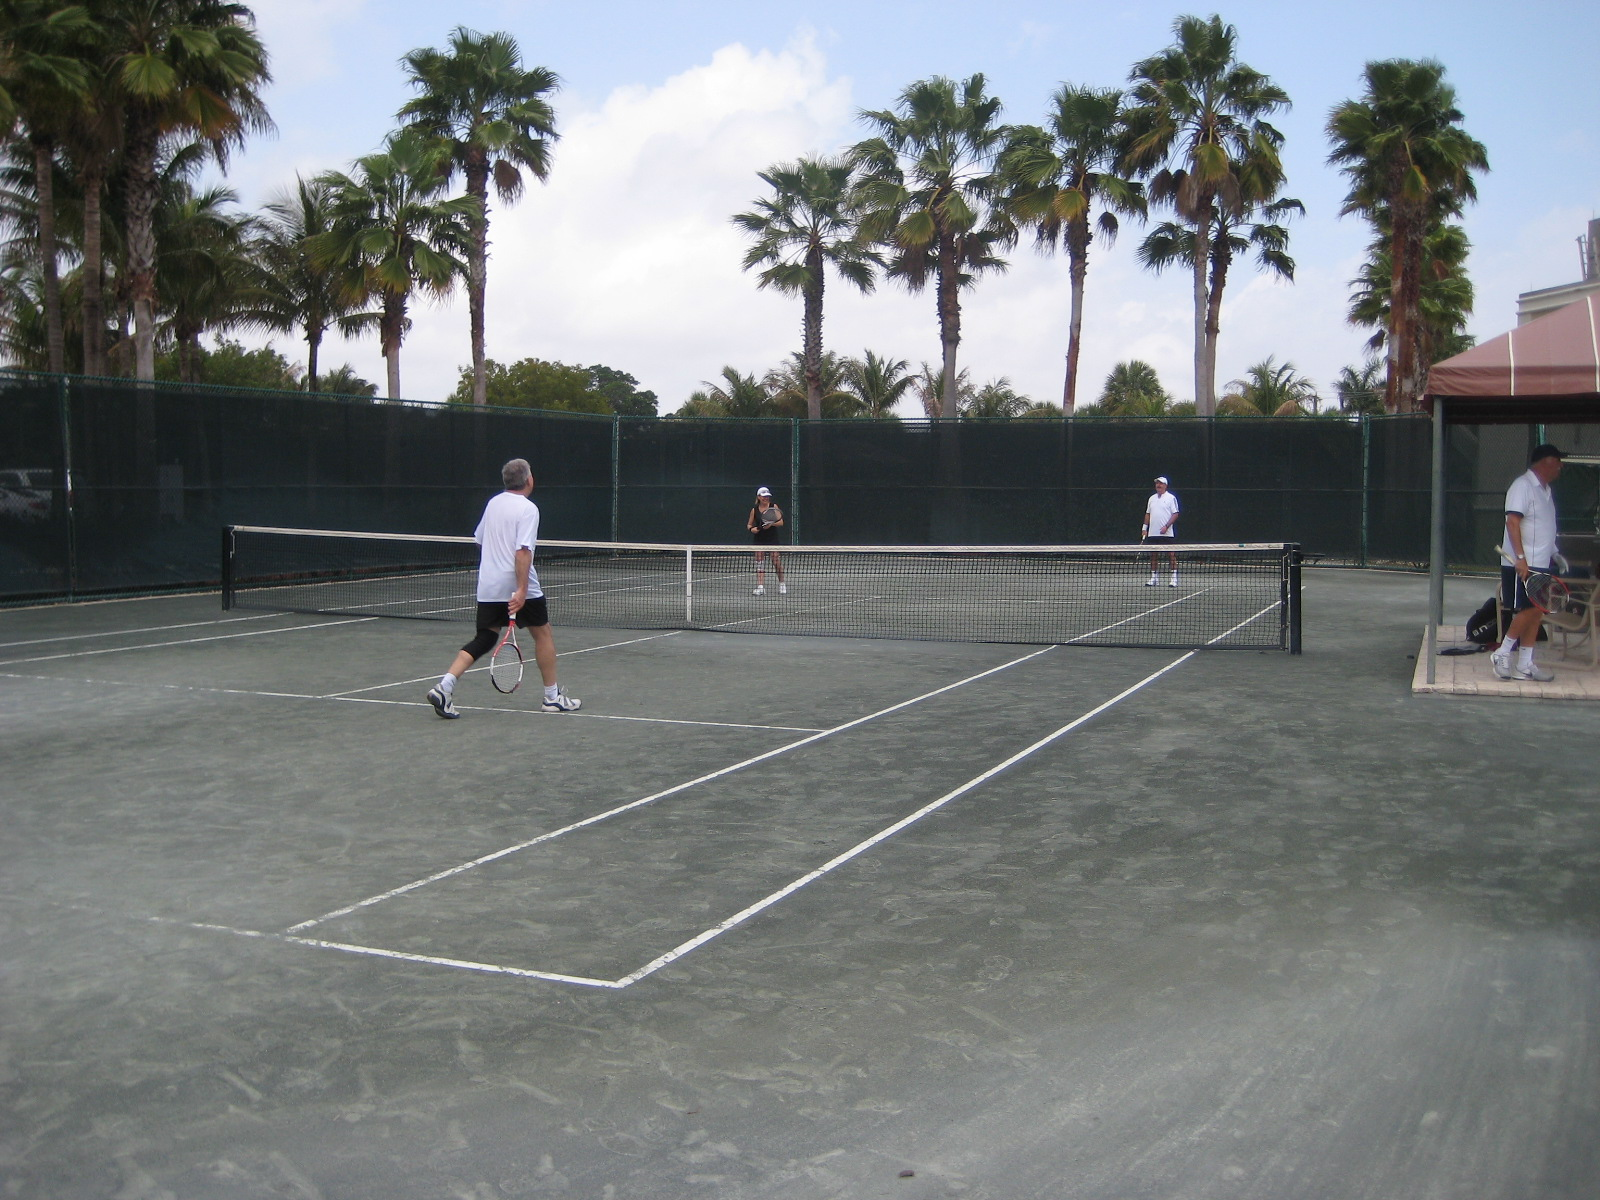 tennis cruise image 1